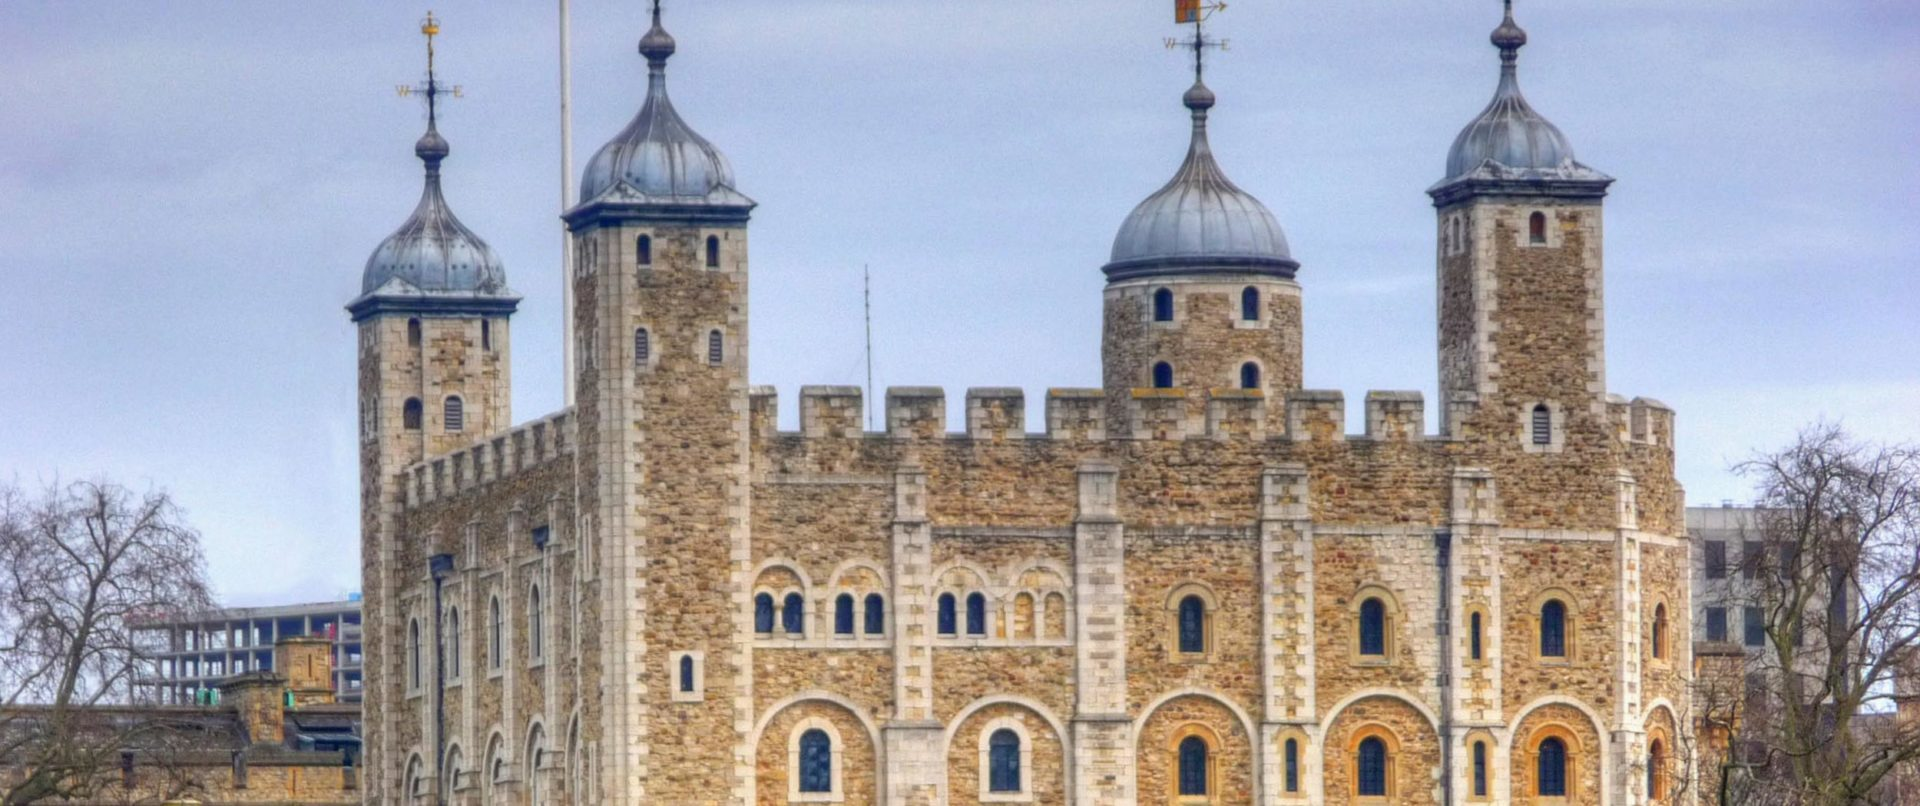 Full-day-london-tour-Tower-of-London